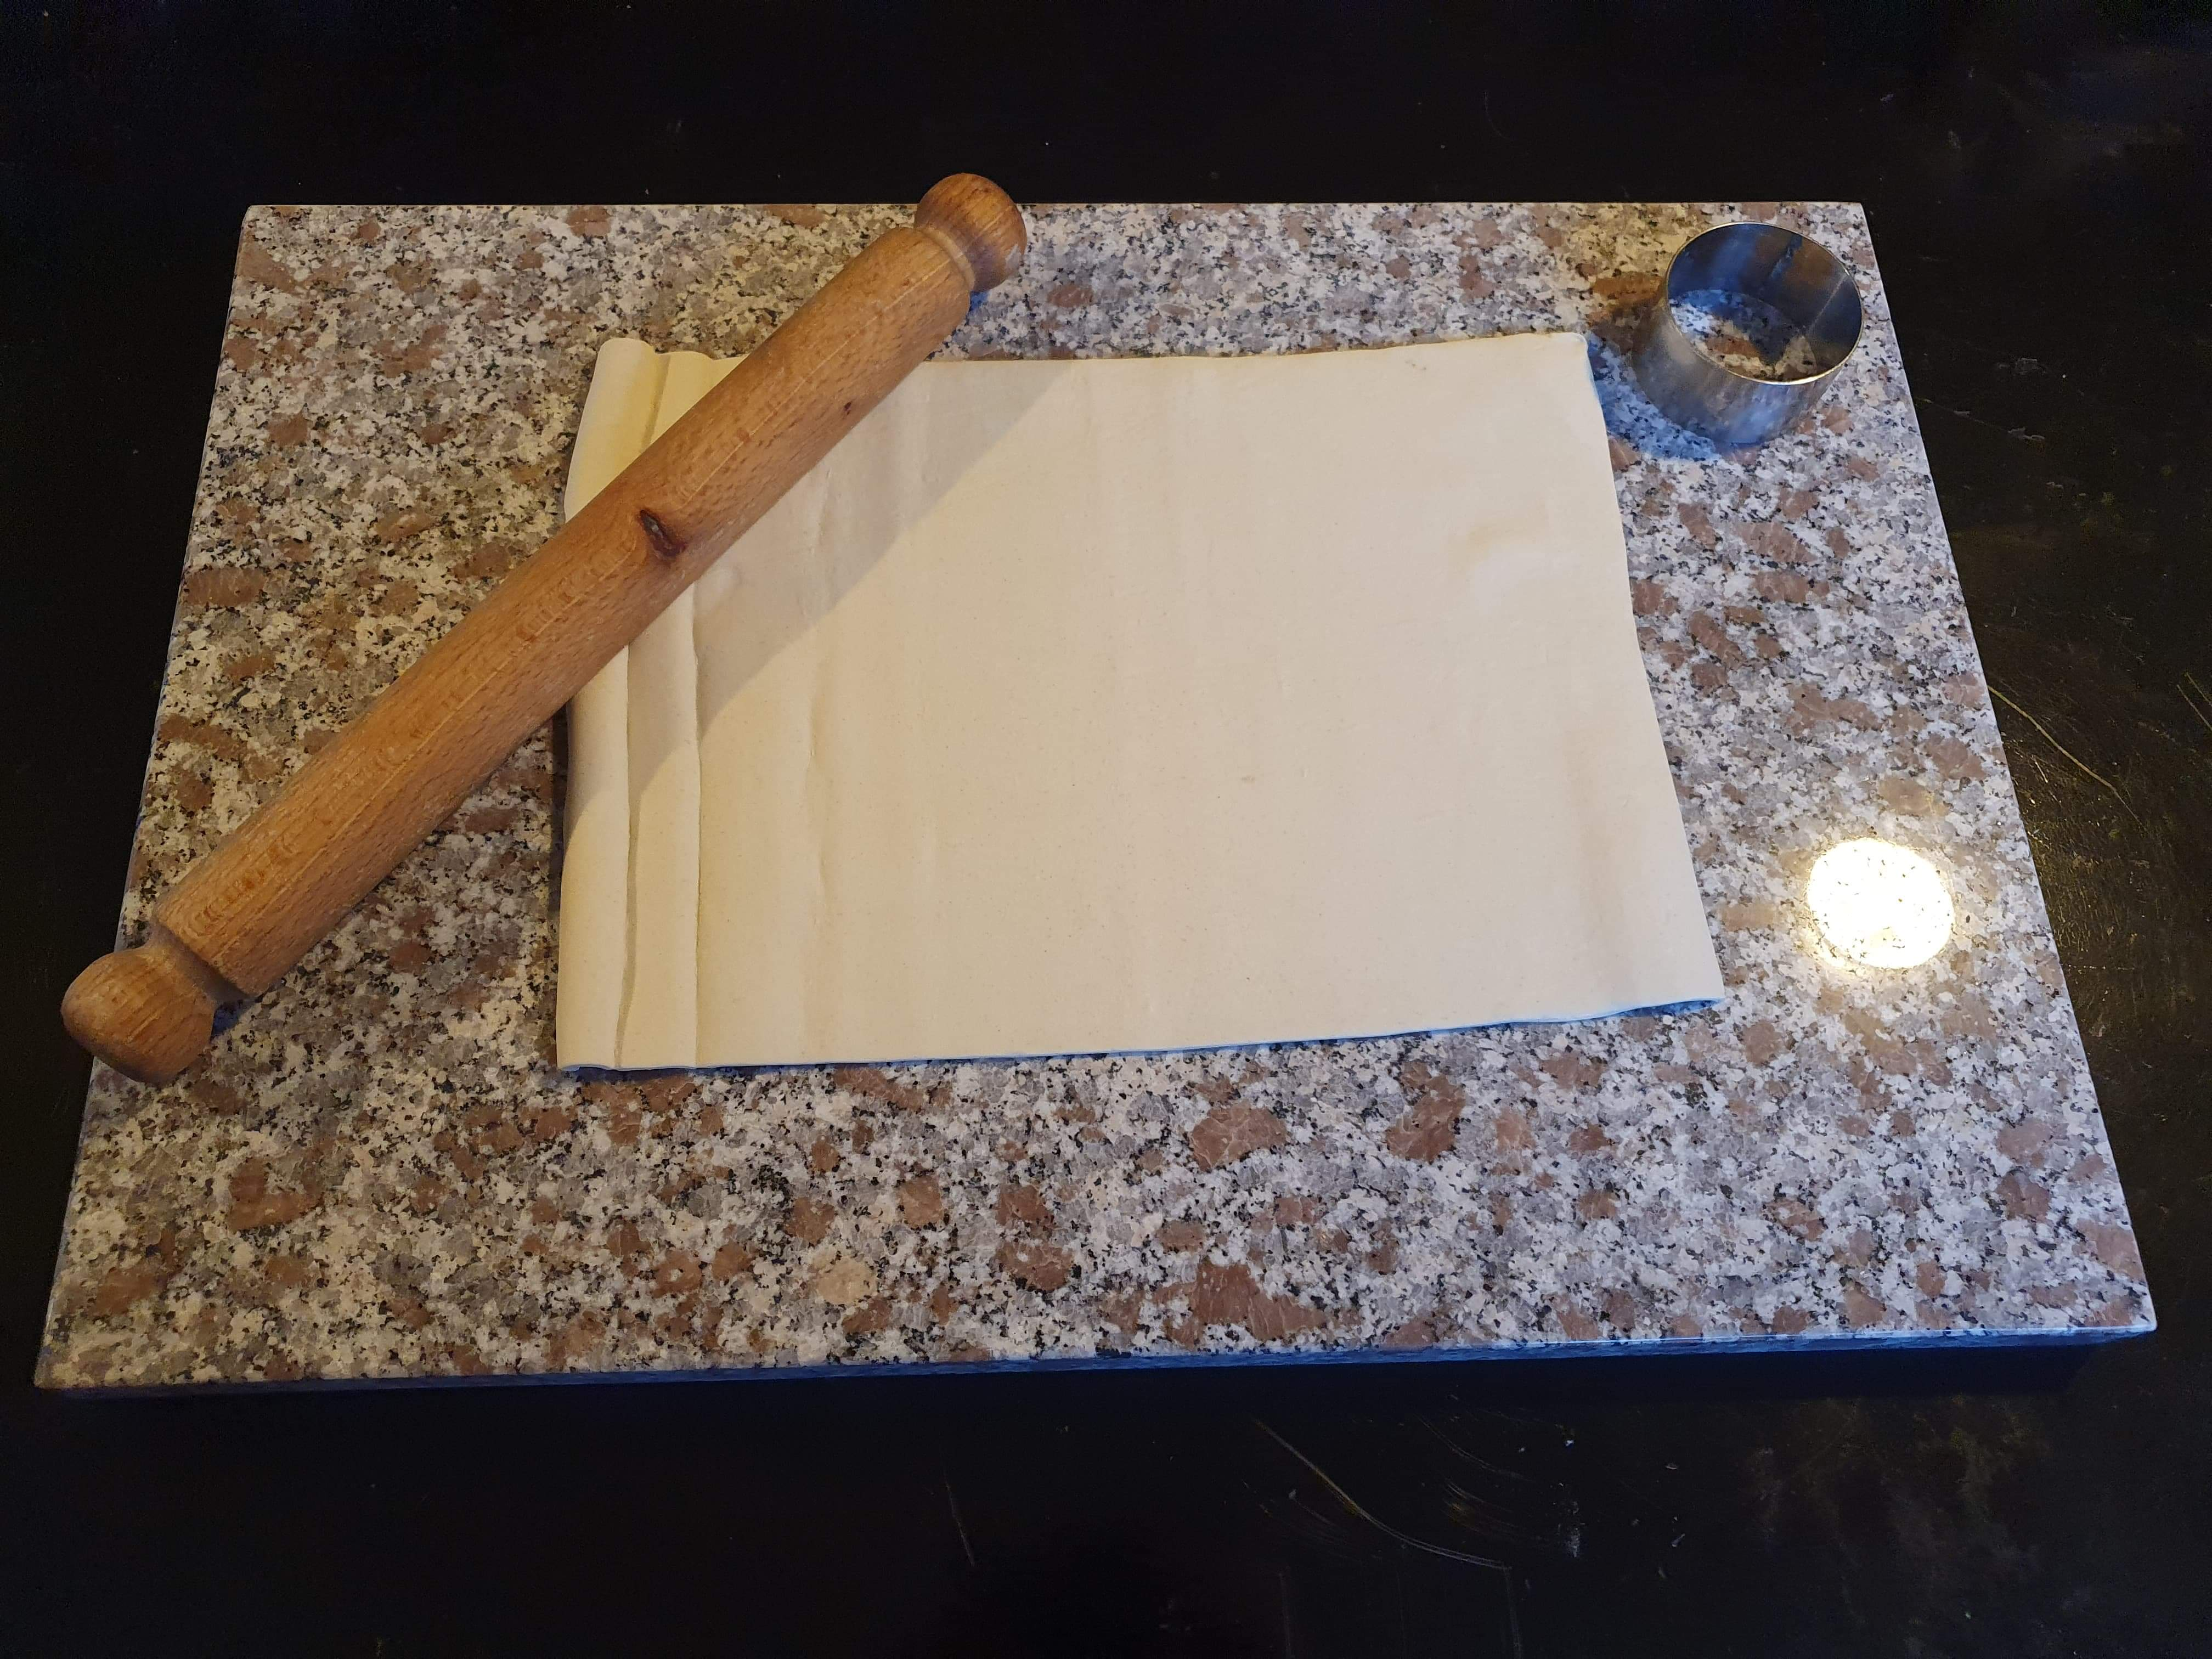 Makes making pastry so much easier with this granite pastry board